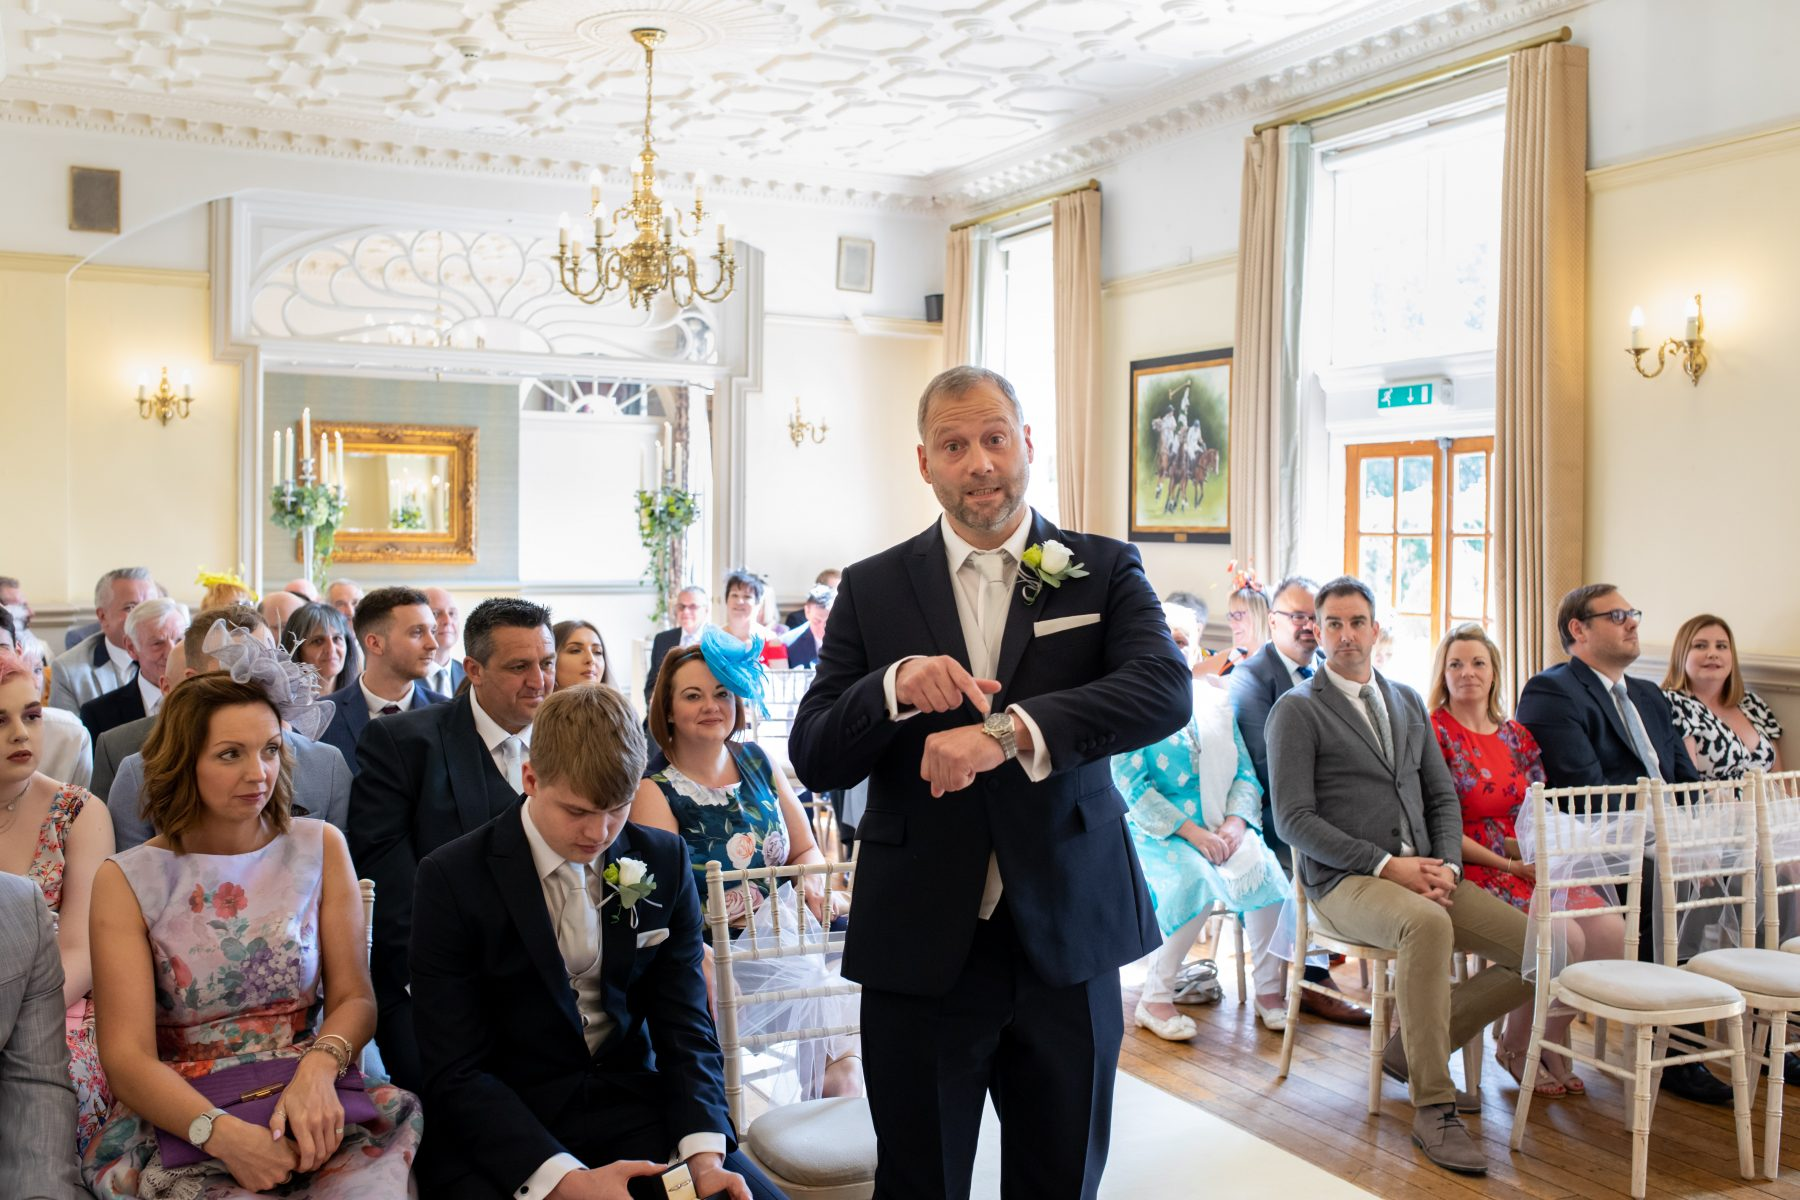 The groom points at this watch as the bride runs late ahead of a wedding at Nunsmere Hall in Cheshire